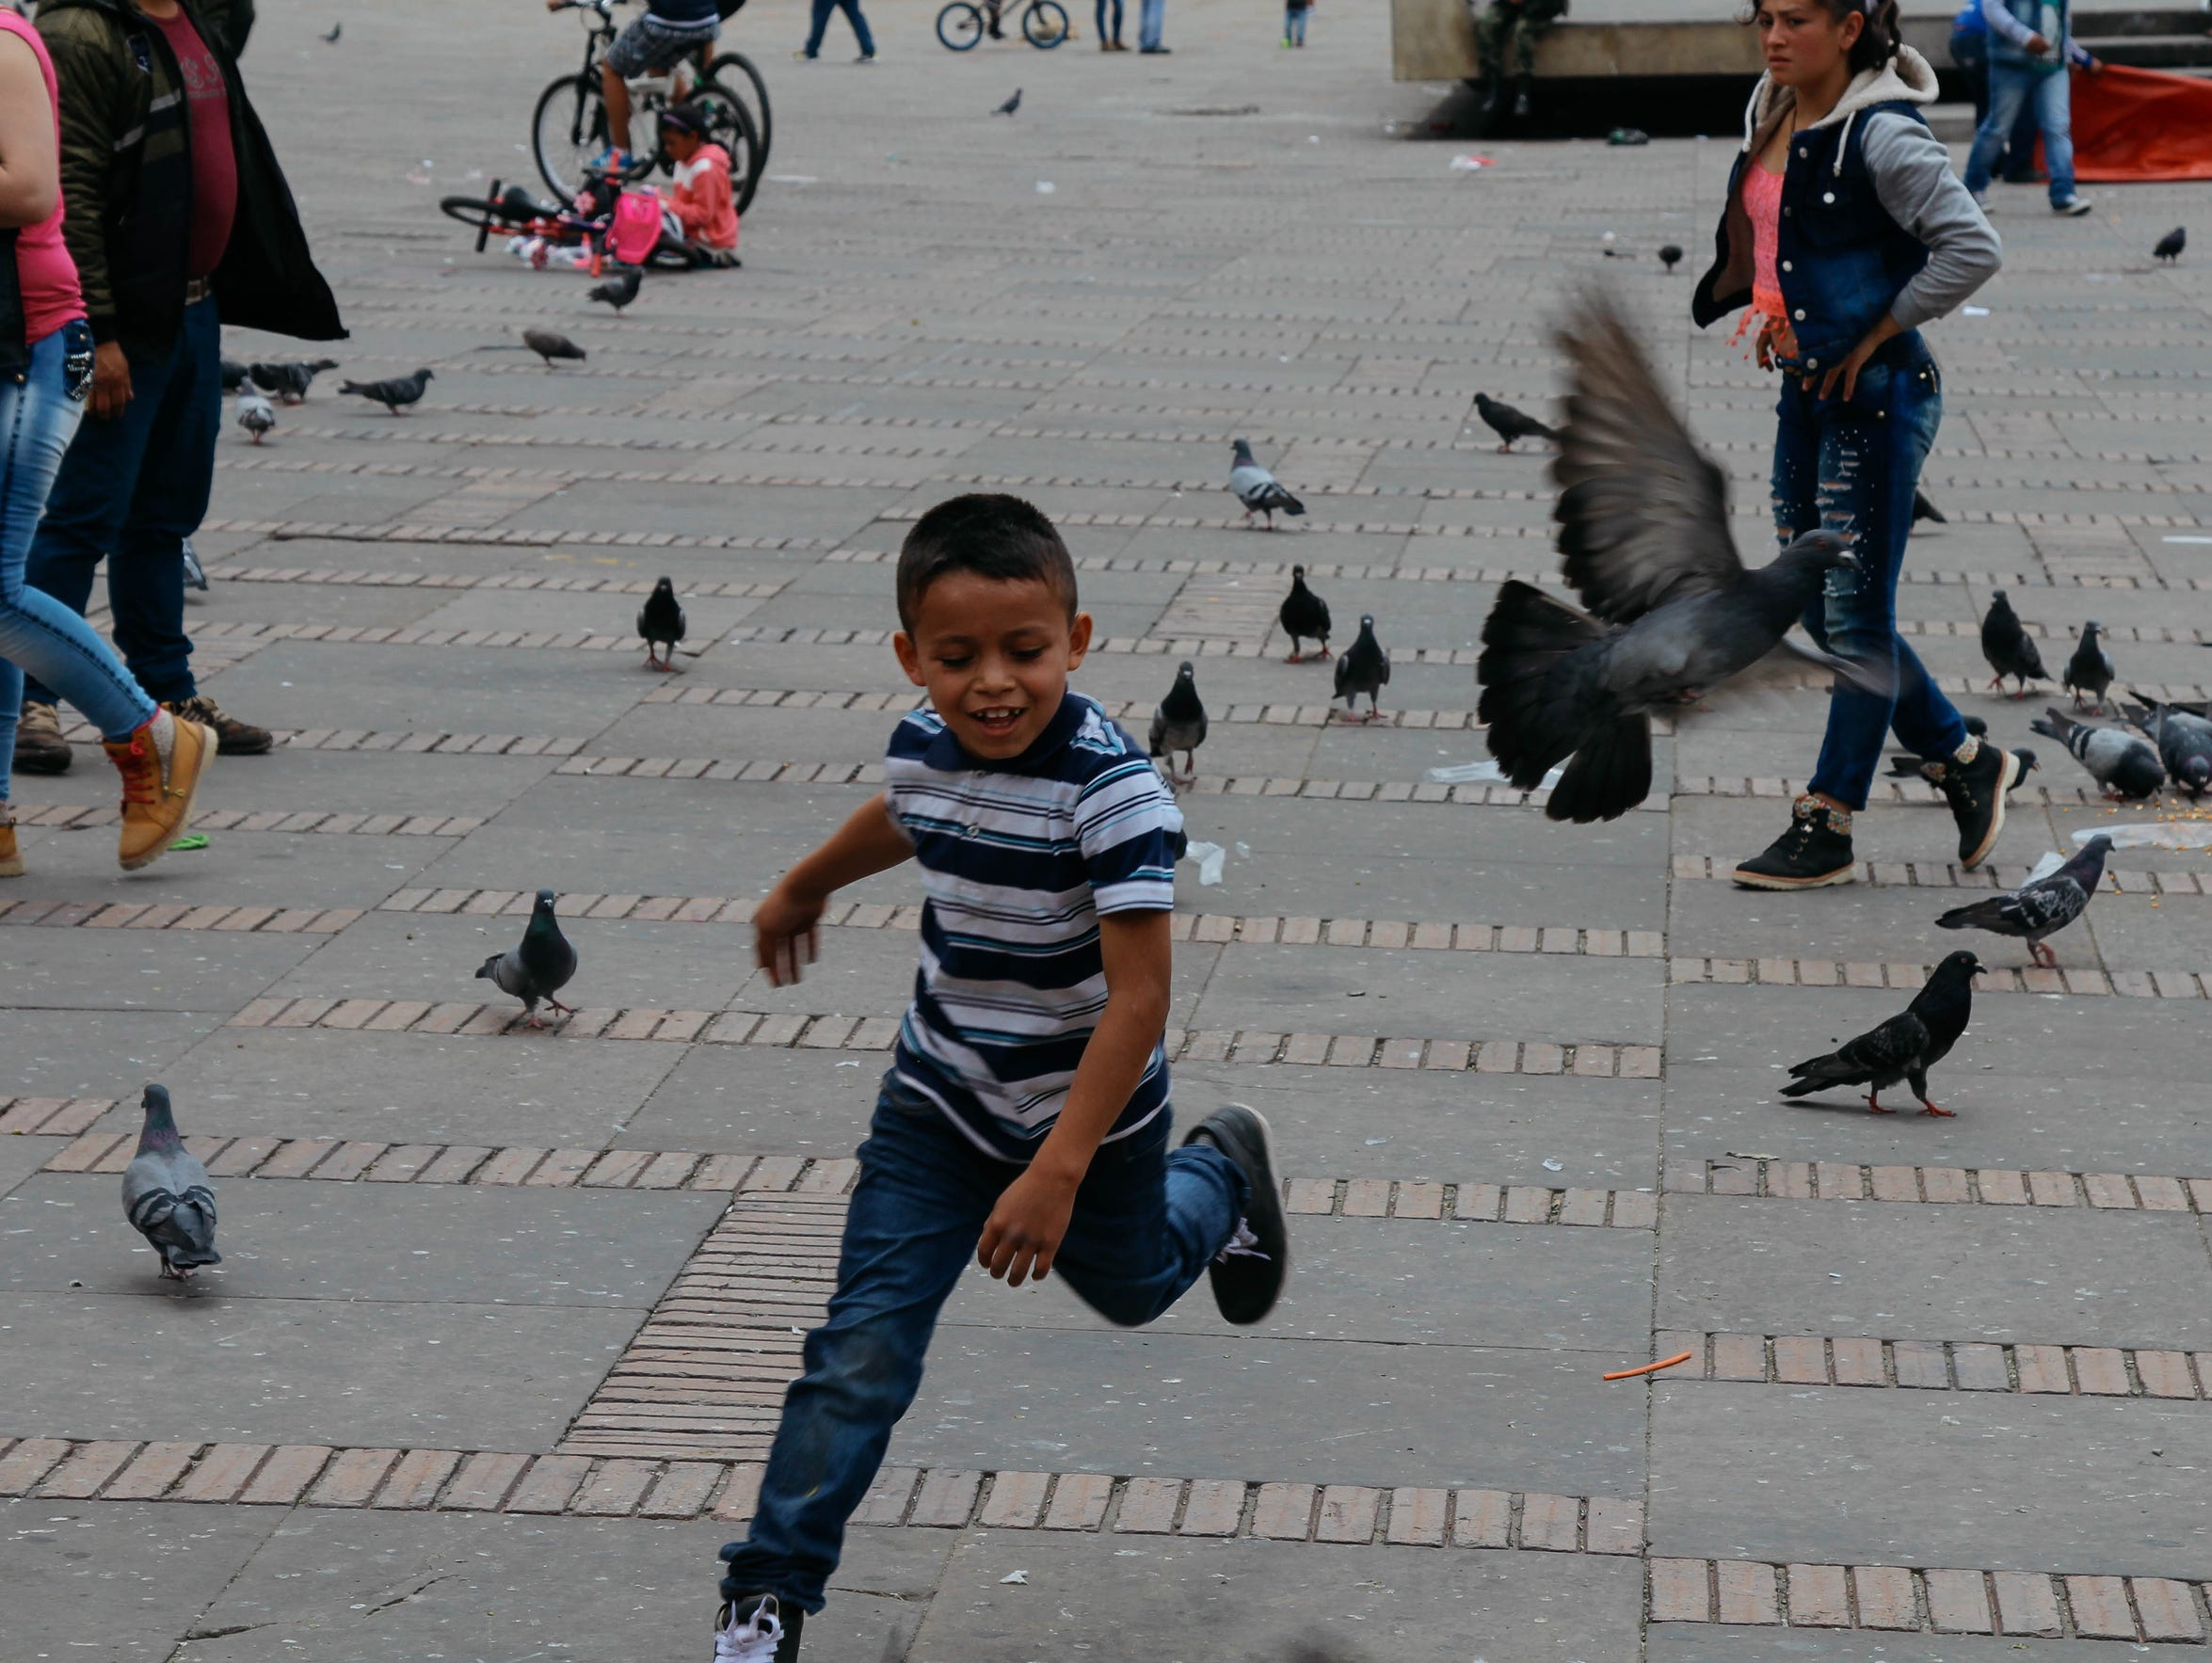 A young boy chases a pigeon in Bogotá's Plaza Bolívar.